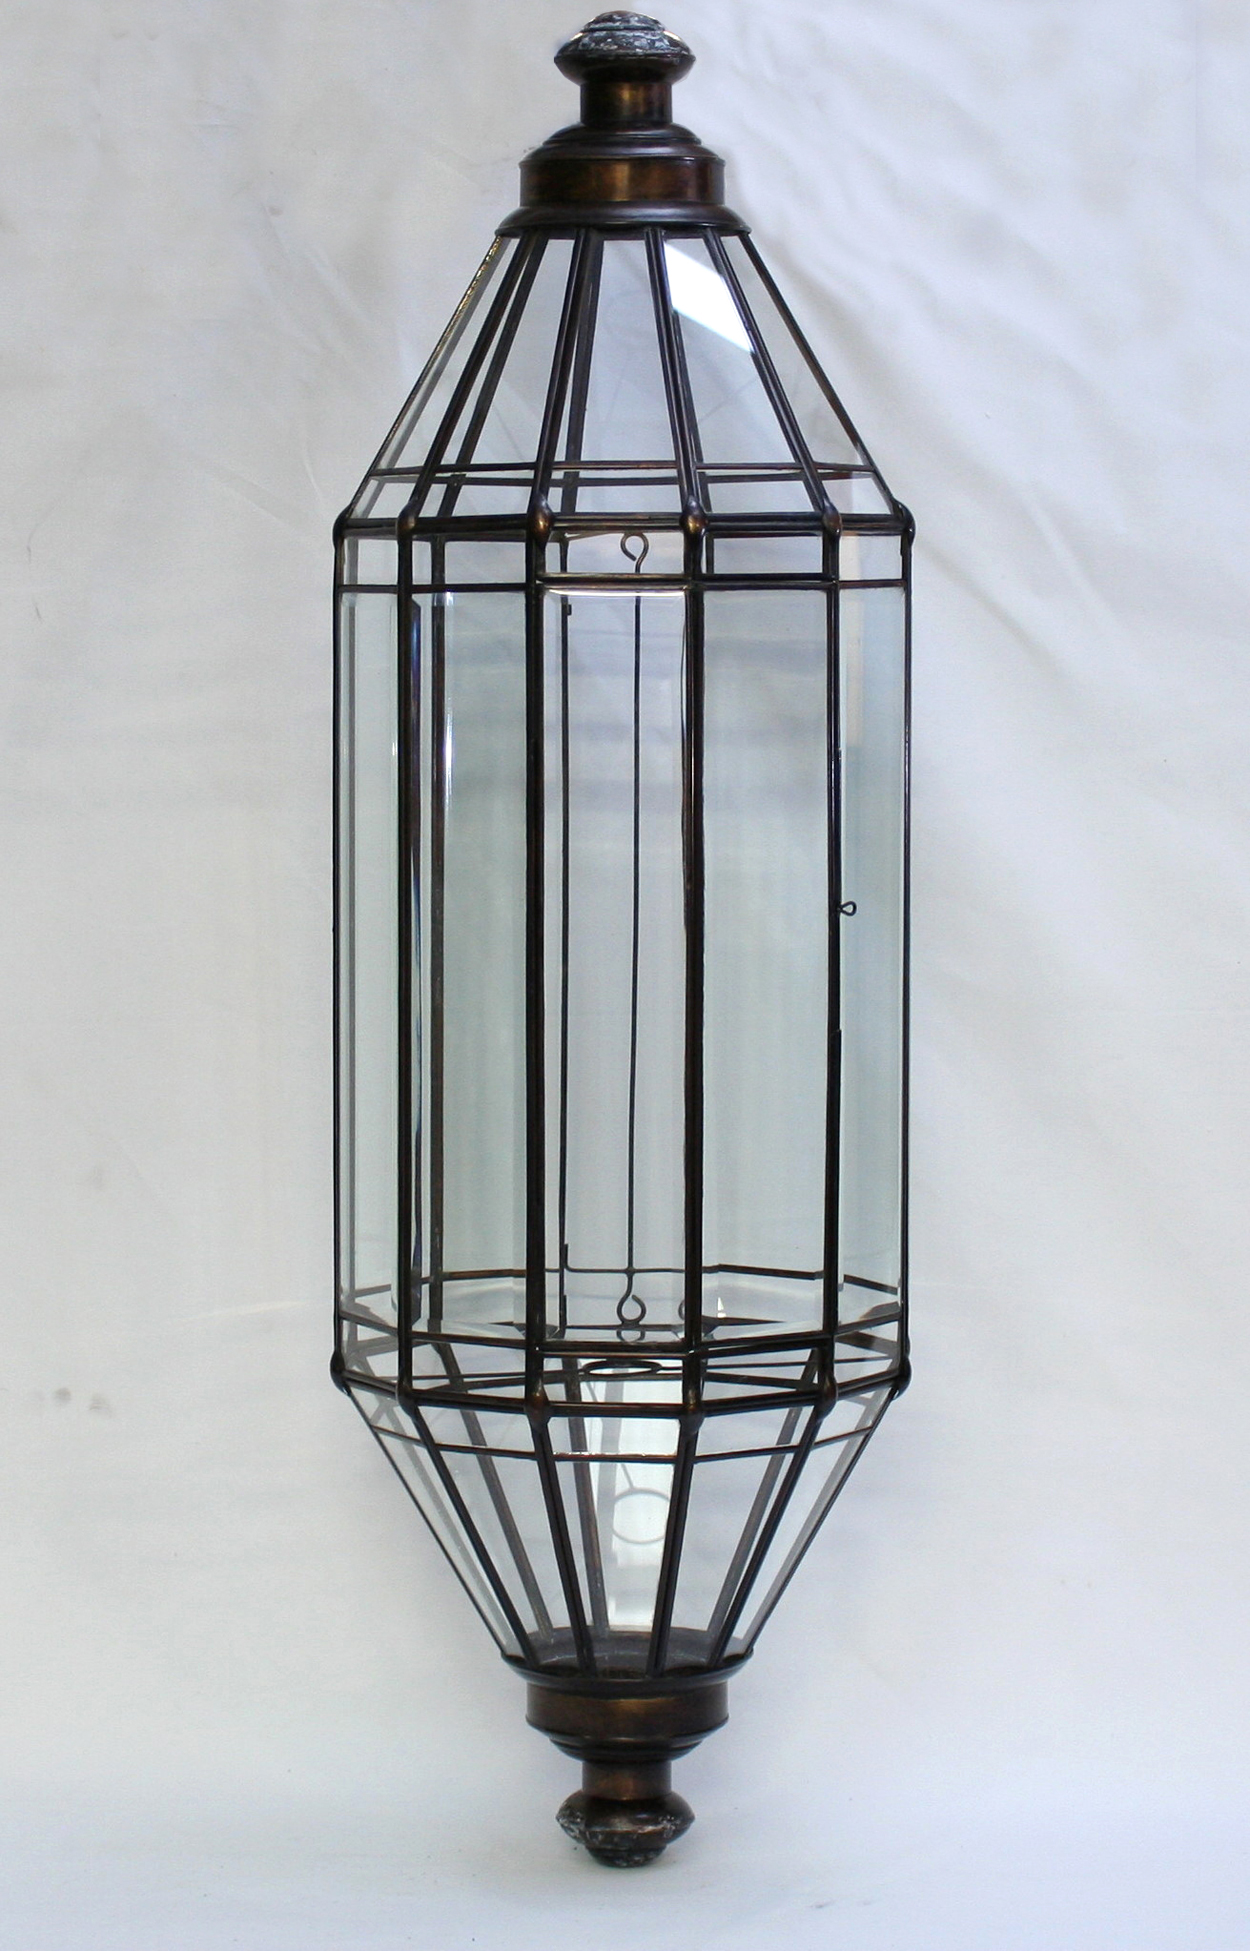 Chinese Lantern Wall Lights : 10 Sided Wall Lantern - Orient House